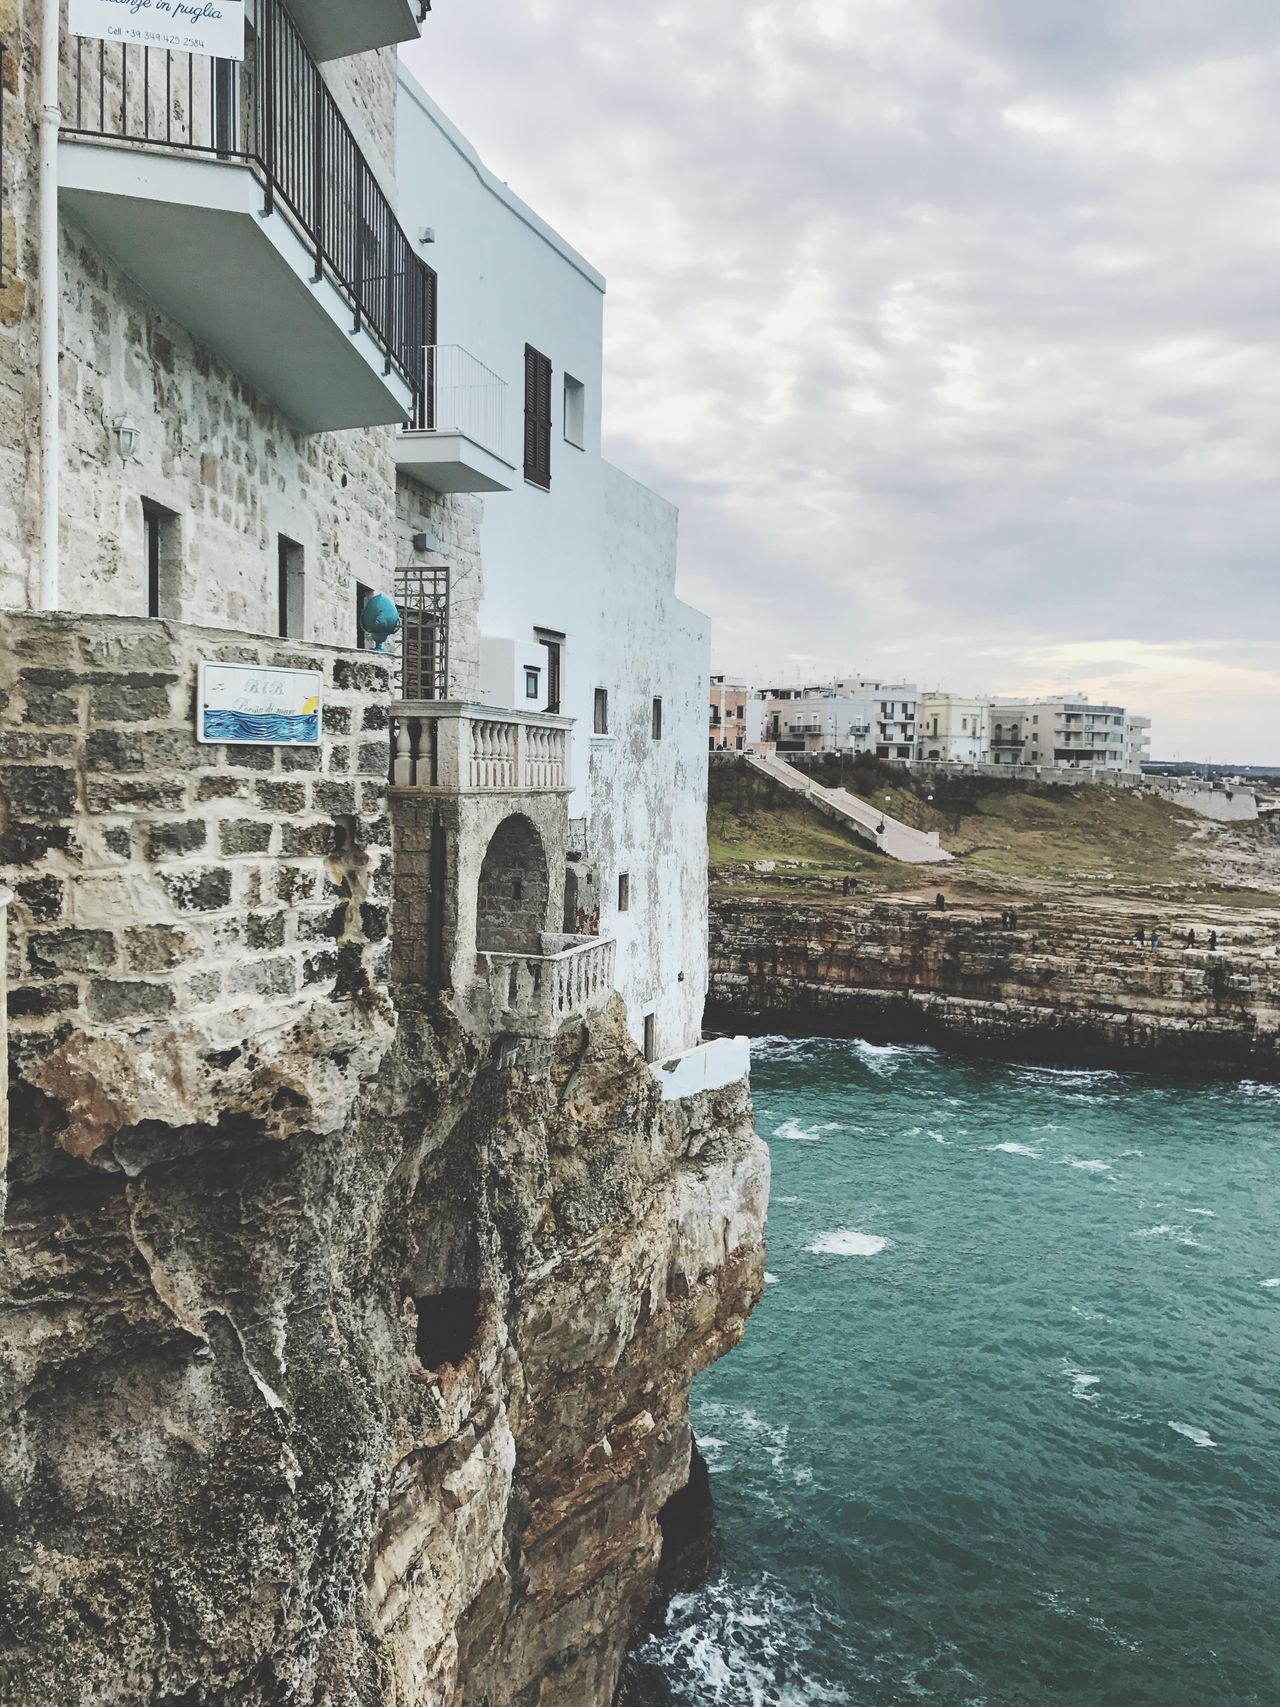 Polignano a Mare, Puglia (Italy). January 2017. Architecture Water Building Exterior Sky Day Outdoors No People Sea Italy Italia Puglia